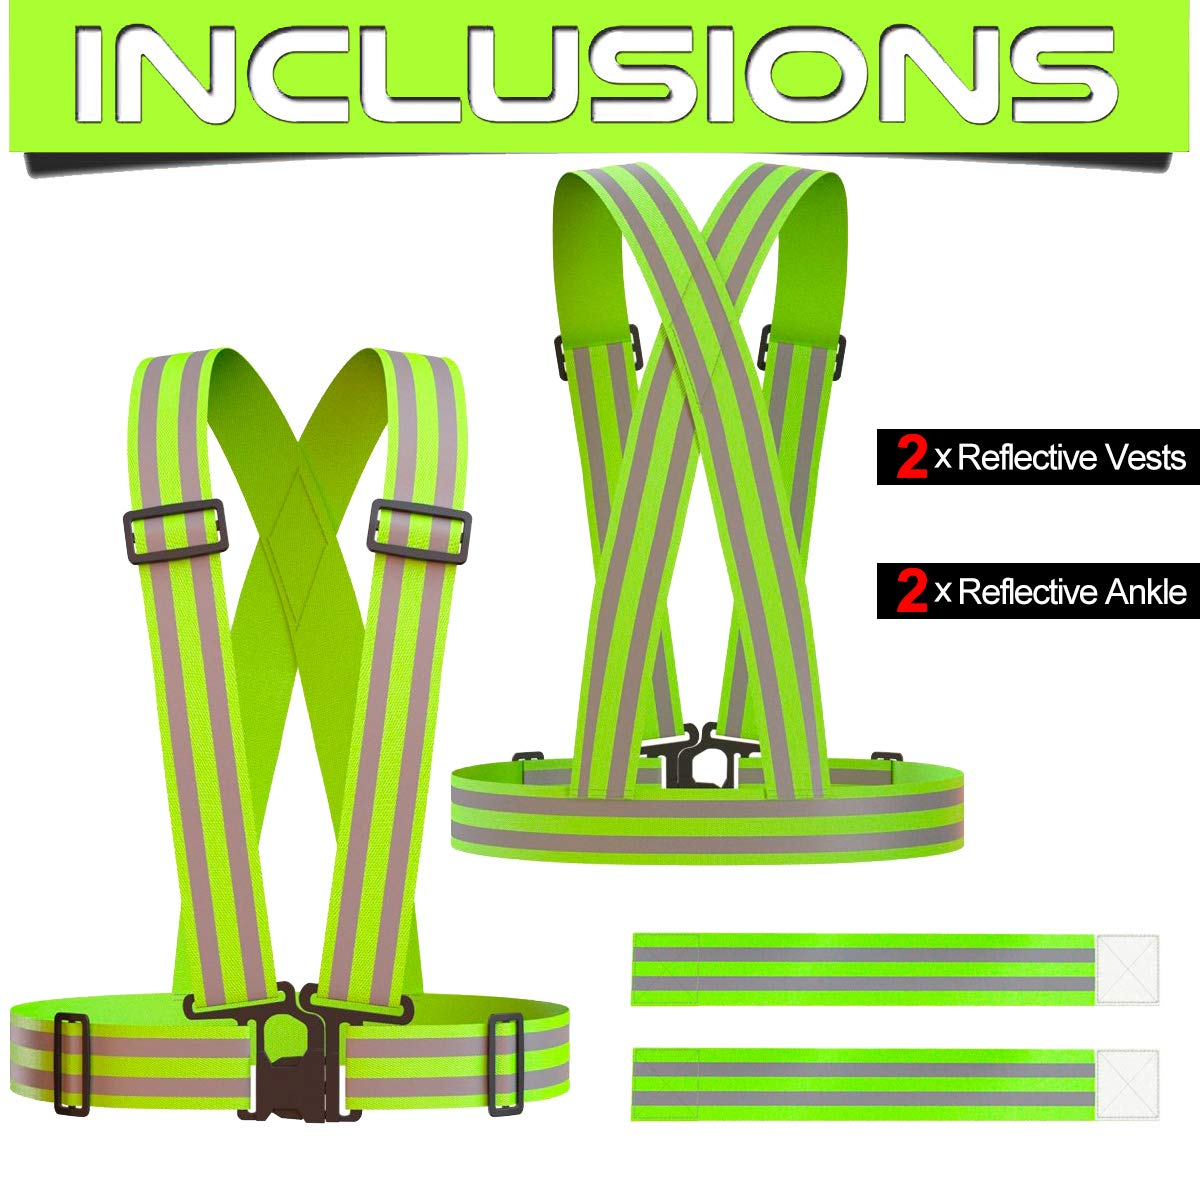 Jogging Walking KEYWELL Reflective Vest and Ankle Bands Set Green - High Visibility Adjustable Strap Gear Safety /& Lightweight for Running Fits over Outdoor Clothing Cycling 2 Set//4 pcs Hiking Fits Over Outdoor Clothing Walking